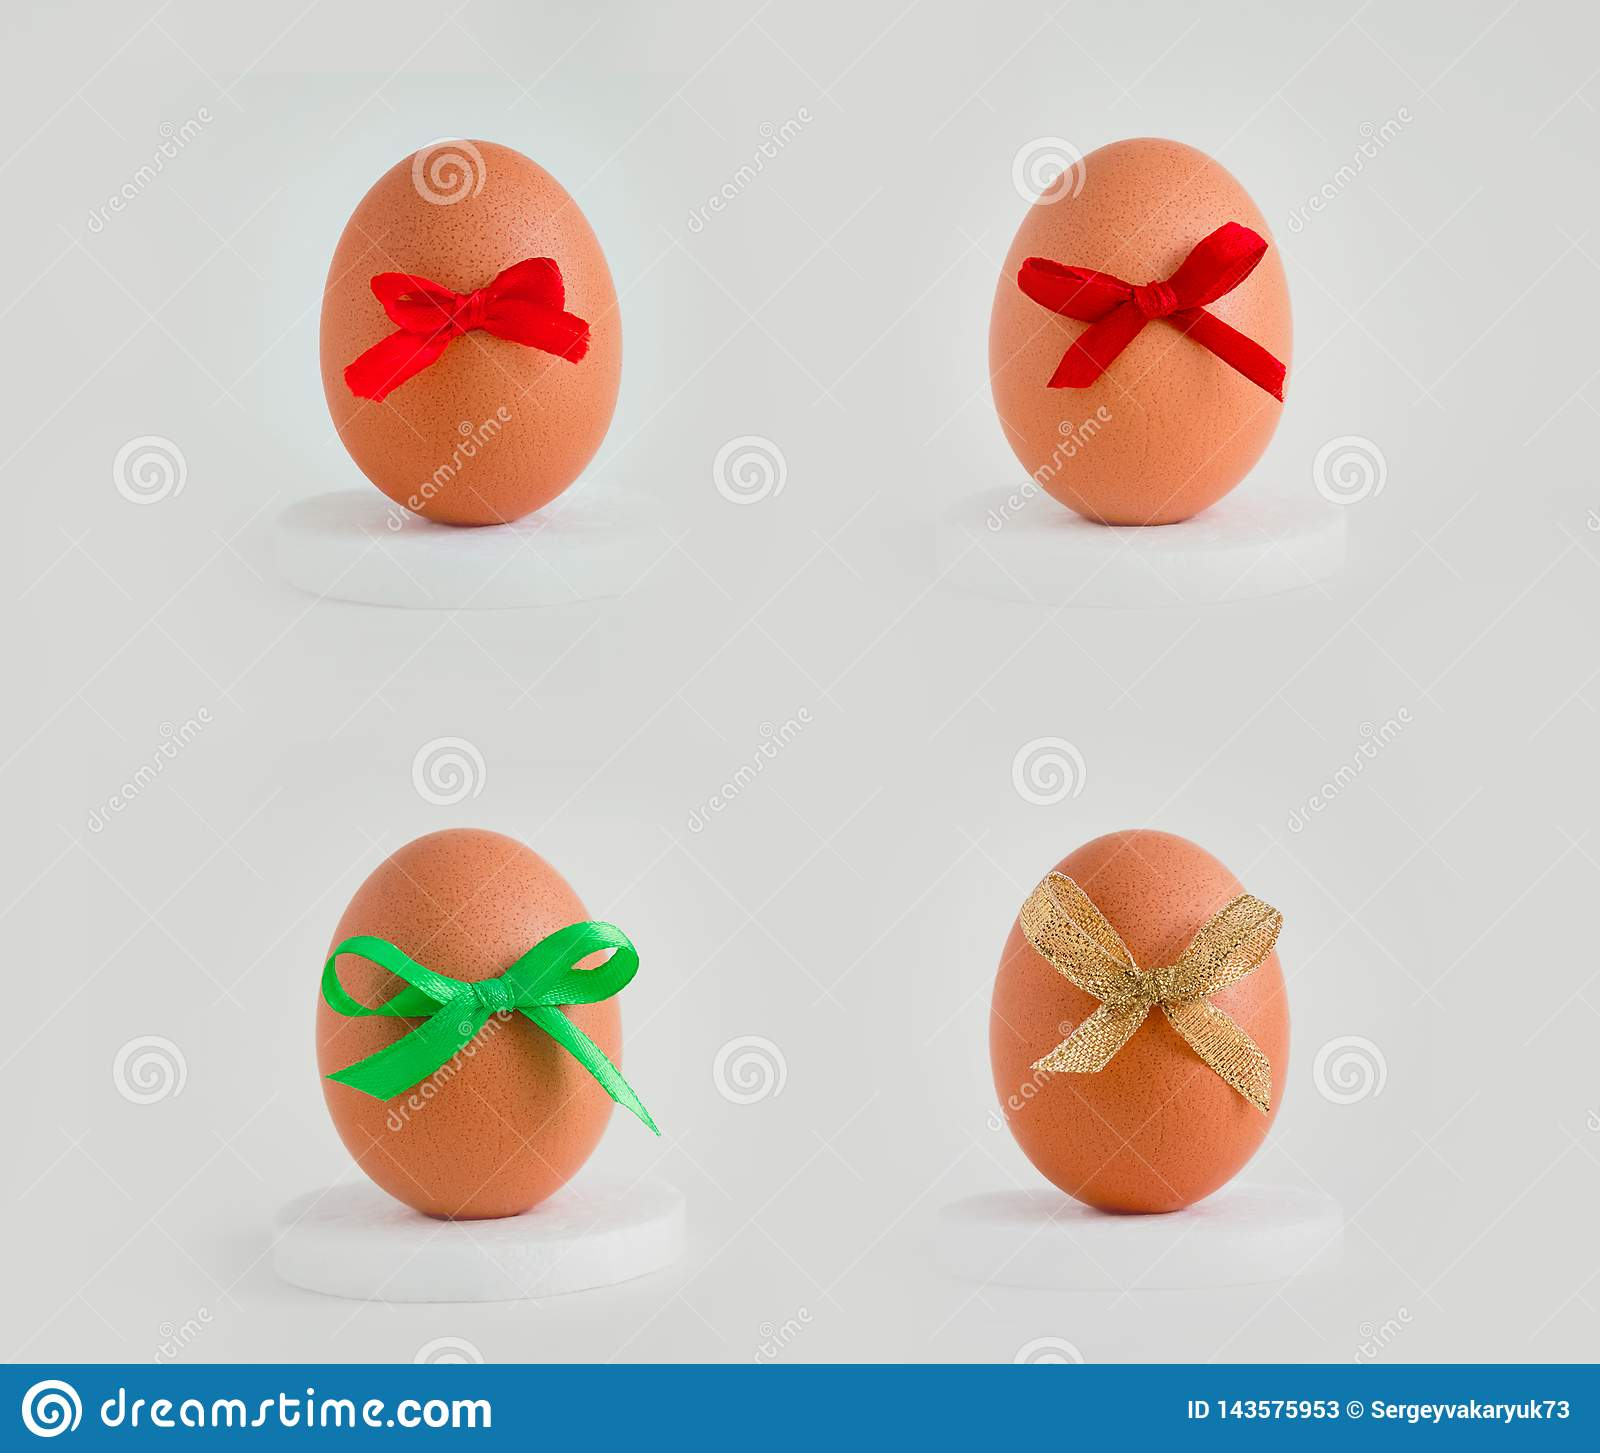 Egg with a decor on a white background.